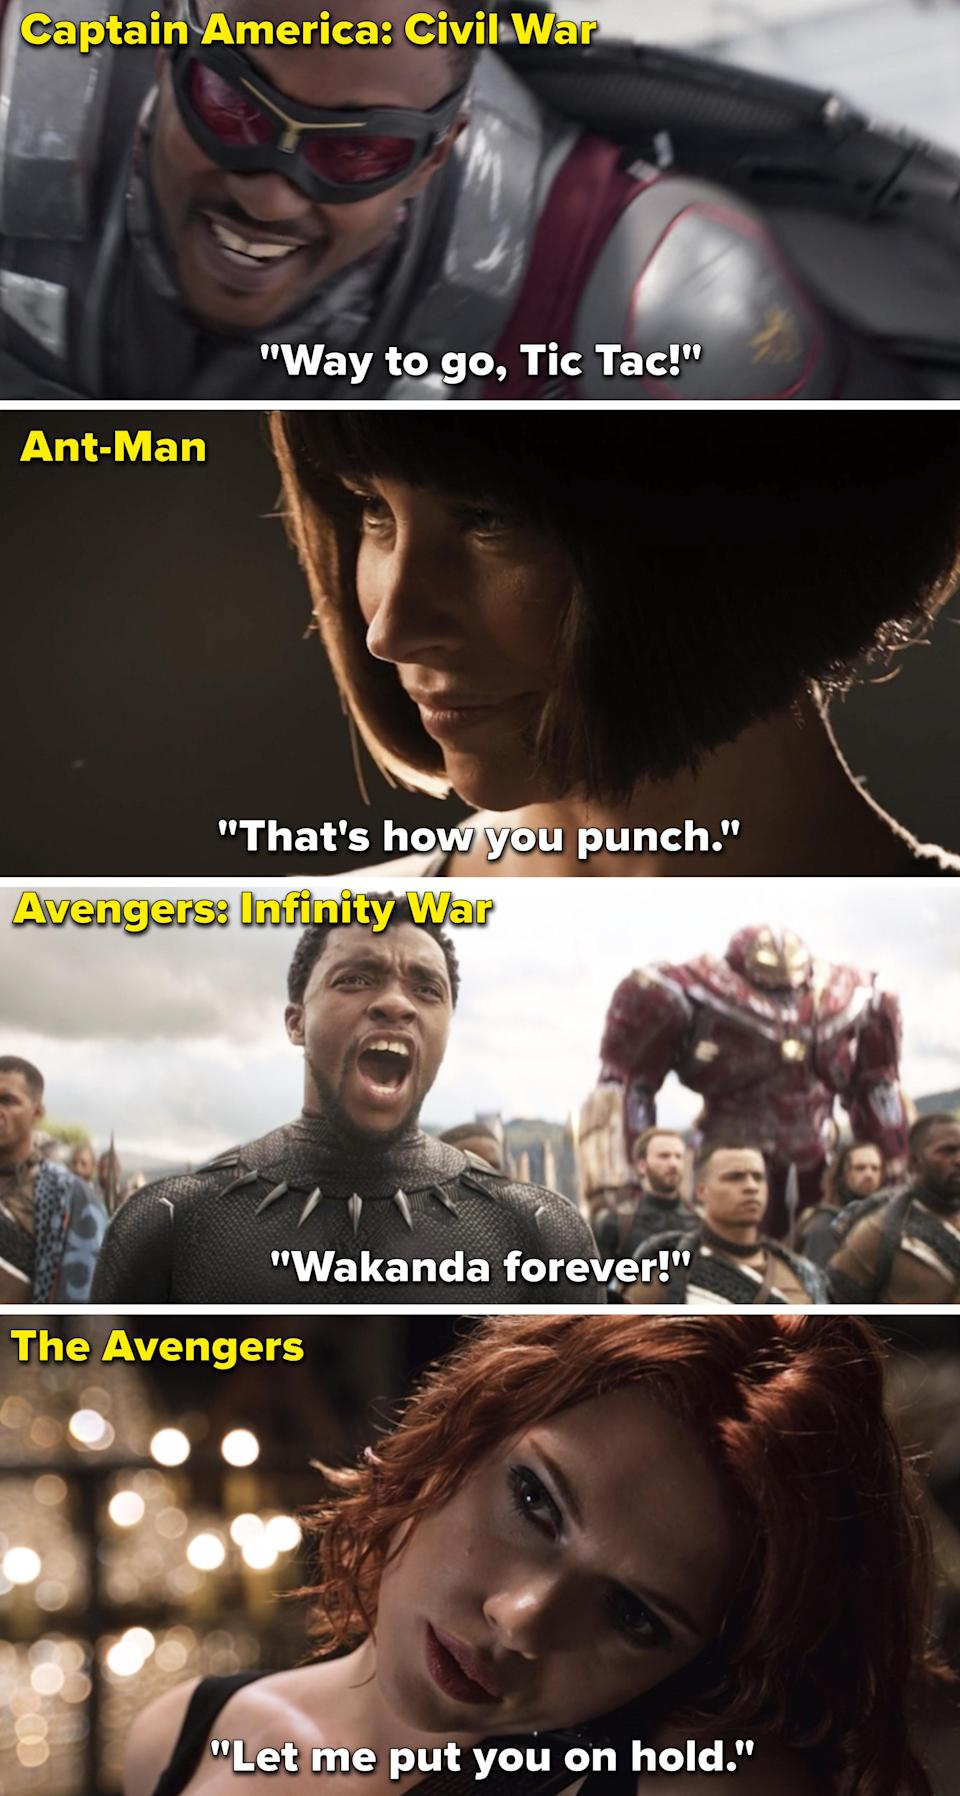 Since this is more interesting than just seeing the quotes over the Marvel opening again, I pulled the actual movie scenes they're from.